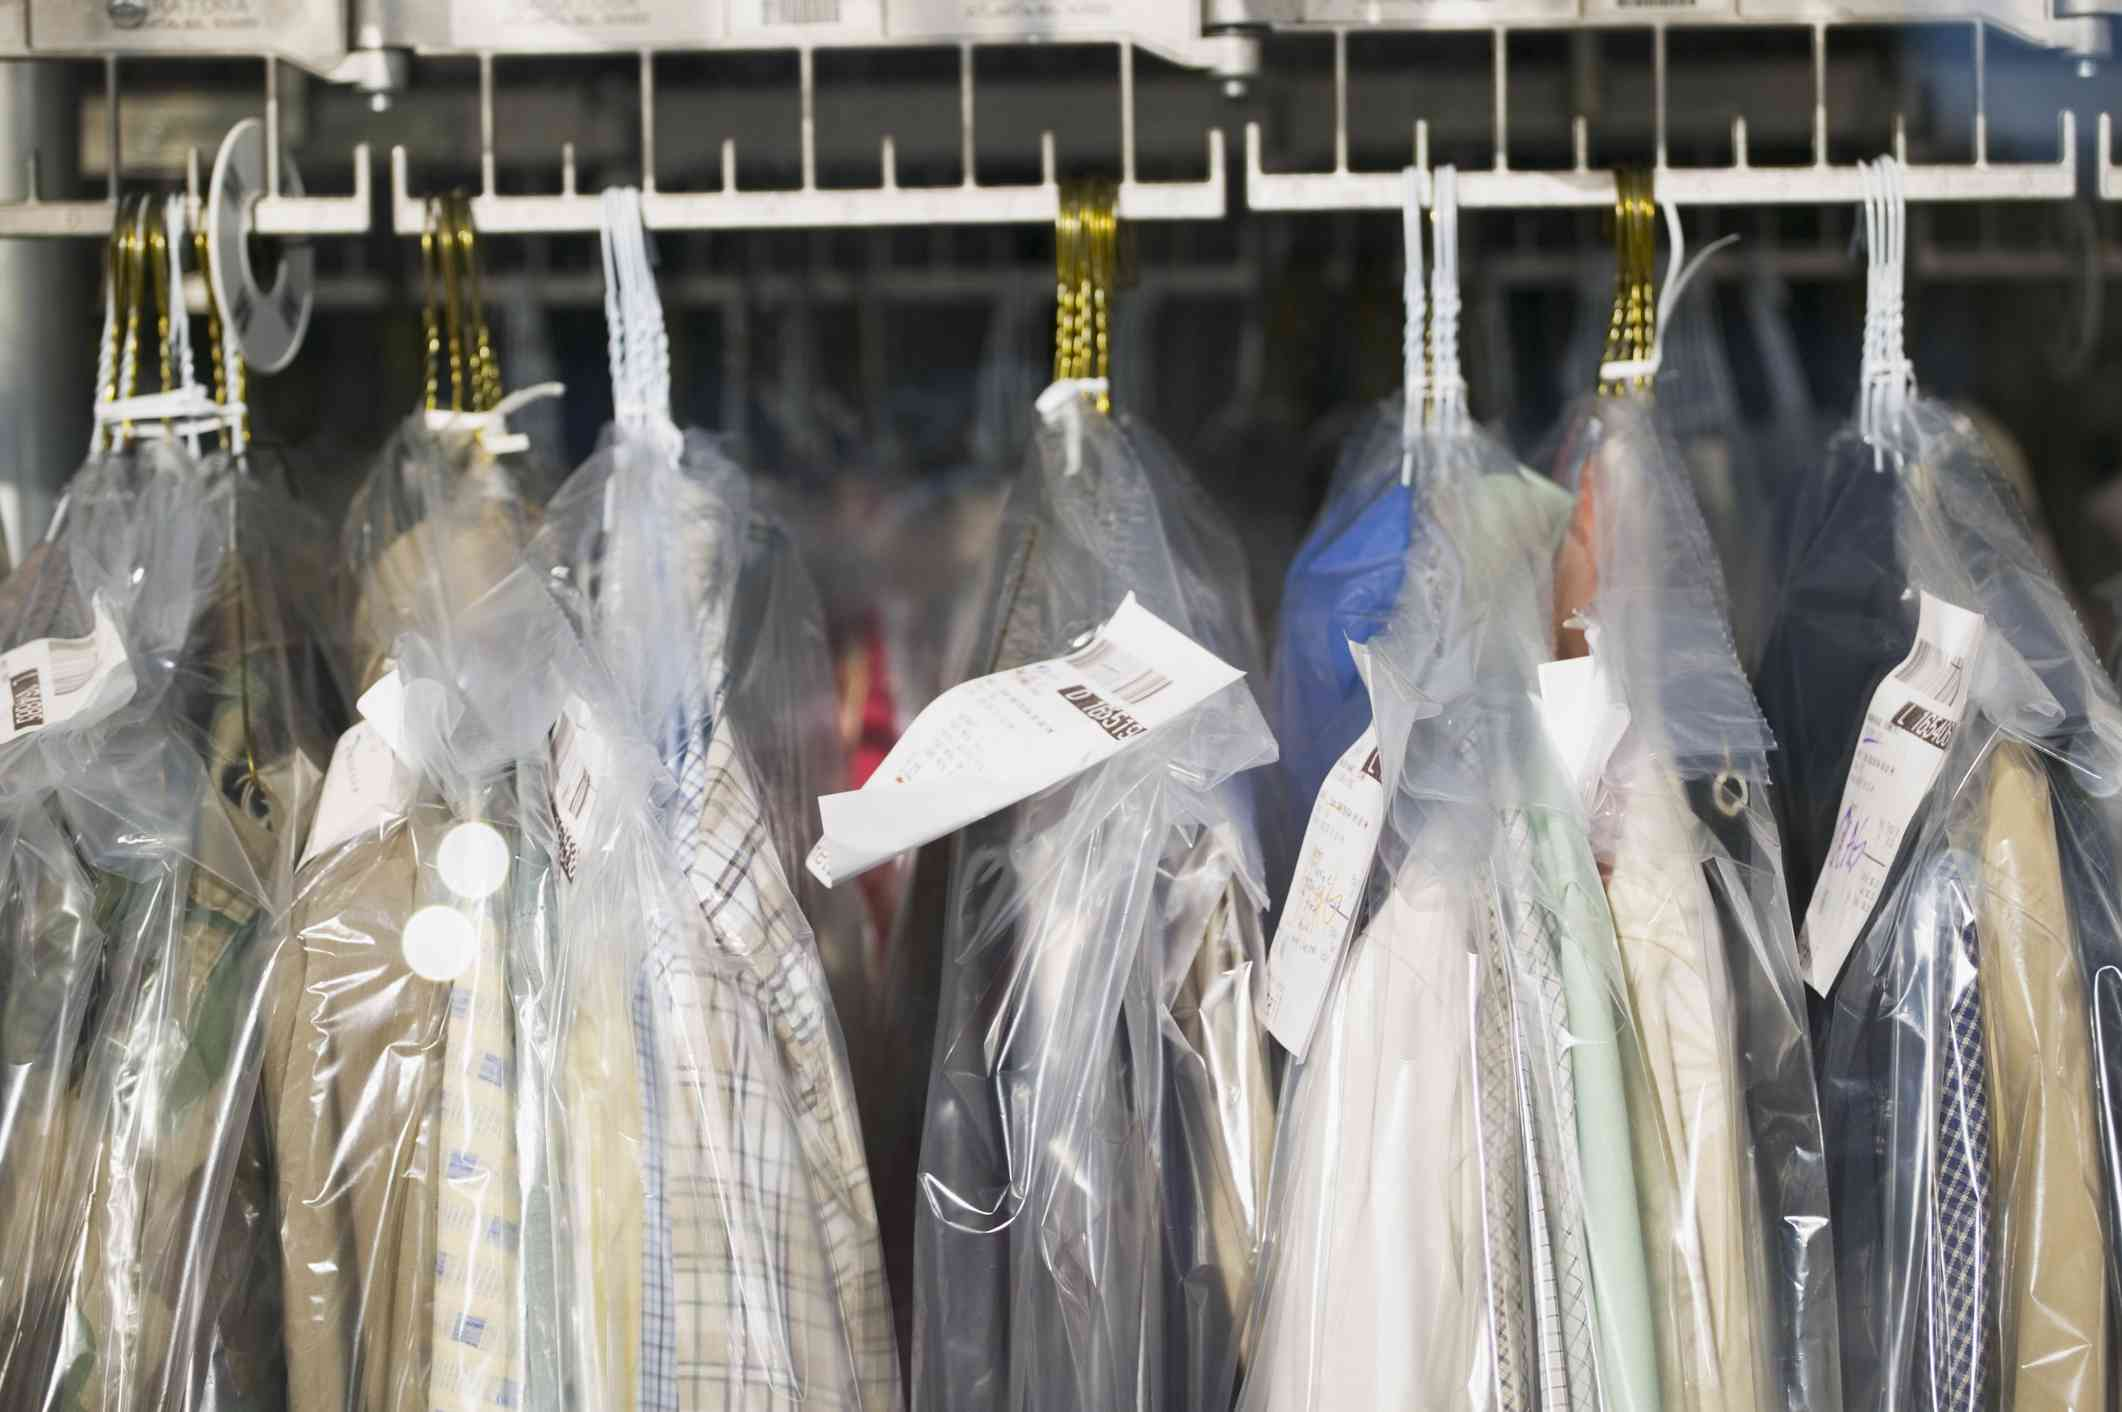 Shirts wrapped in plastic hanging on a rack